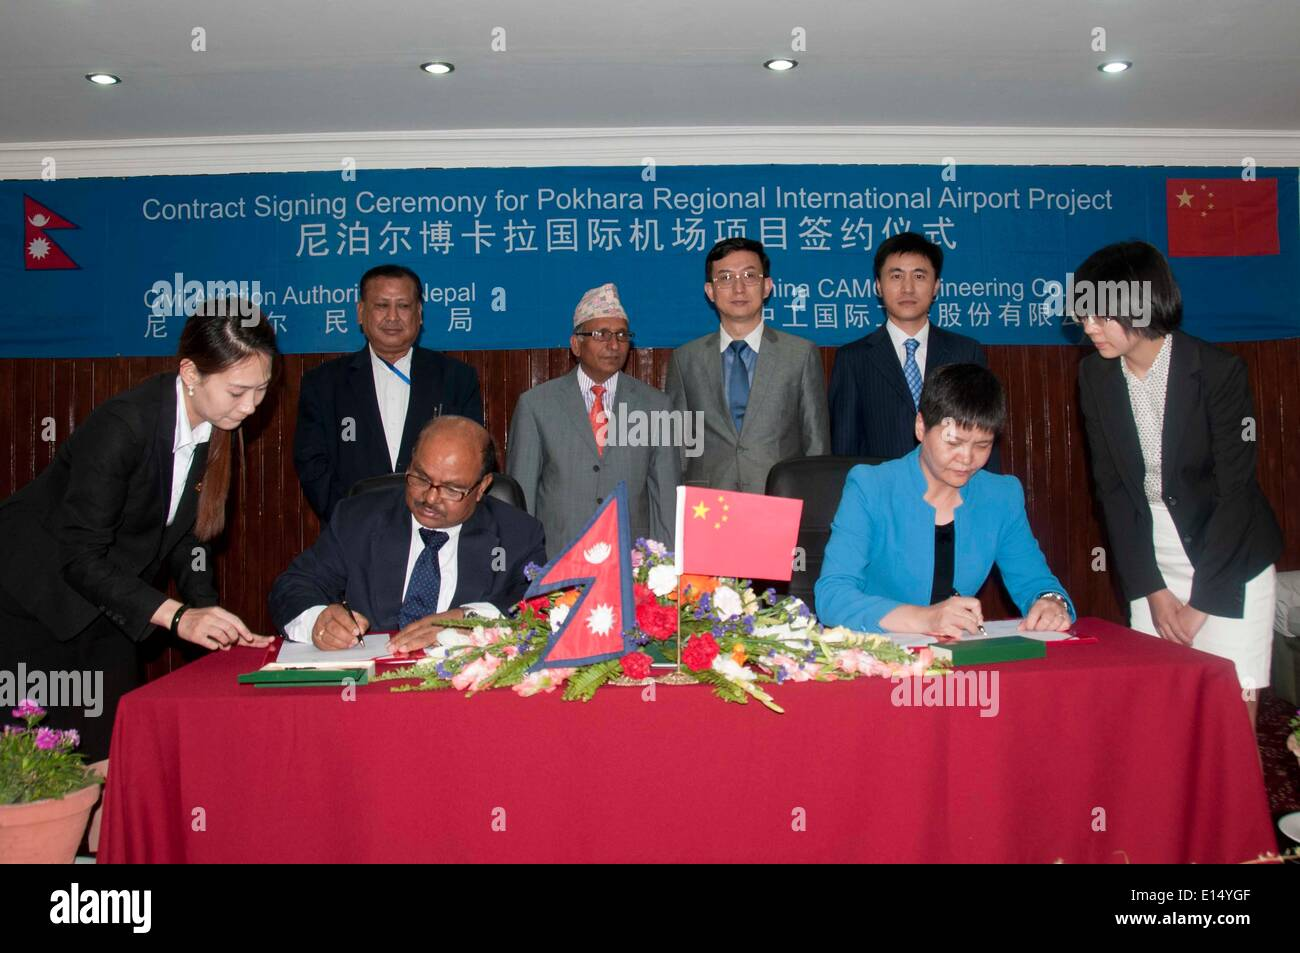 Kathmandu, Nepal. 22nd May, 2014. Ratish Chandra Lal Suman (2nd L front), chief of Civil Aviation Authority of Nepal (CAAN), the aviation regulatory body in the country, and Luo Yan (2nd R front), chairman and president of China CAMC Engineering Co., sign a construction agreement for the Pokhara Regional International Airport in Kathmandu, Nepal, May 22, 2014. The Nepal government has on Thursday signed a construction agreement with China CAMC Engineering Co. for the development of the second international airport in the country. © Pratap Thapa/Xinhua/Alamy Live News - Stock Image